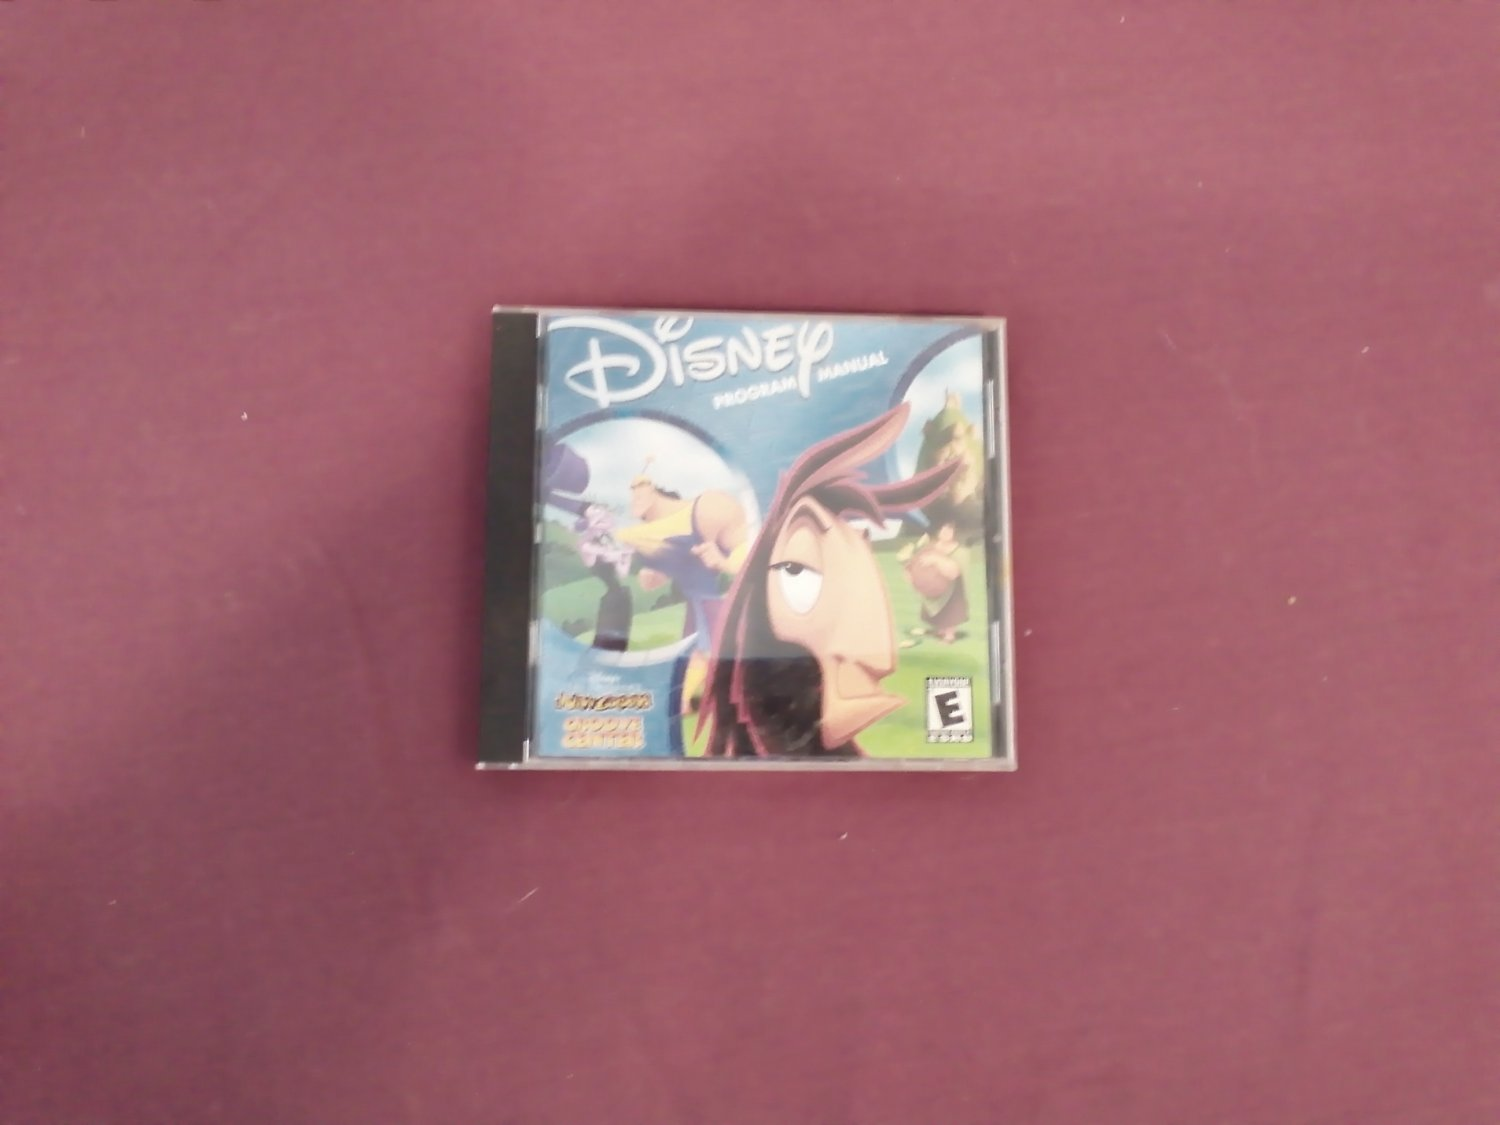 Disney's The Emperor's New Groove Groove Center CD-ROM Game Rated E (mw)